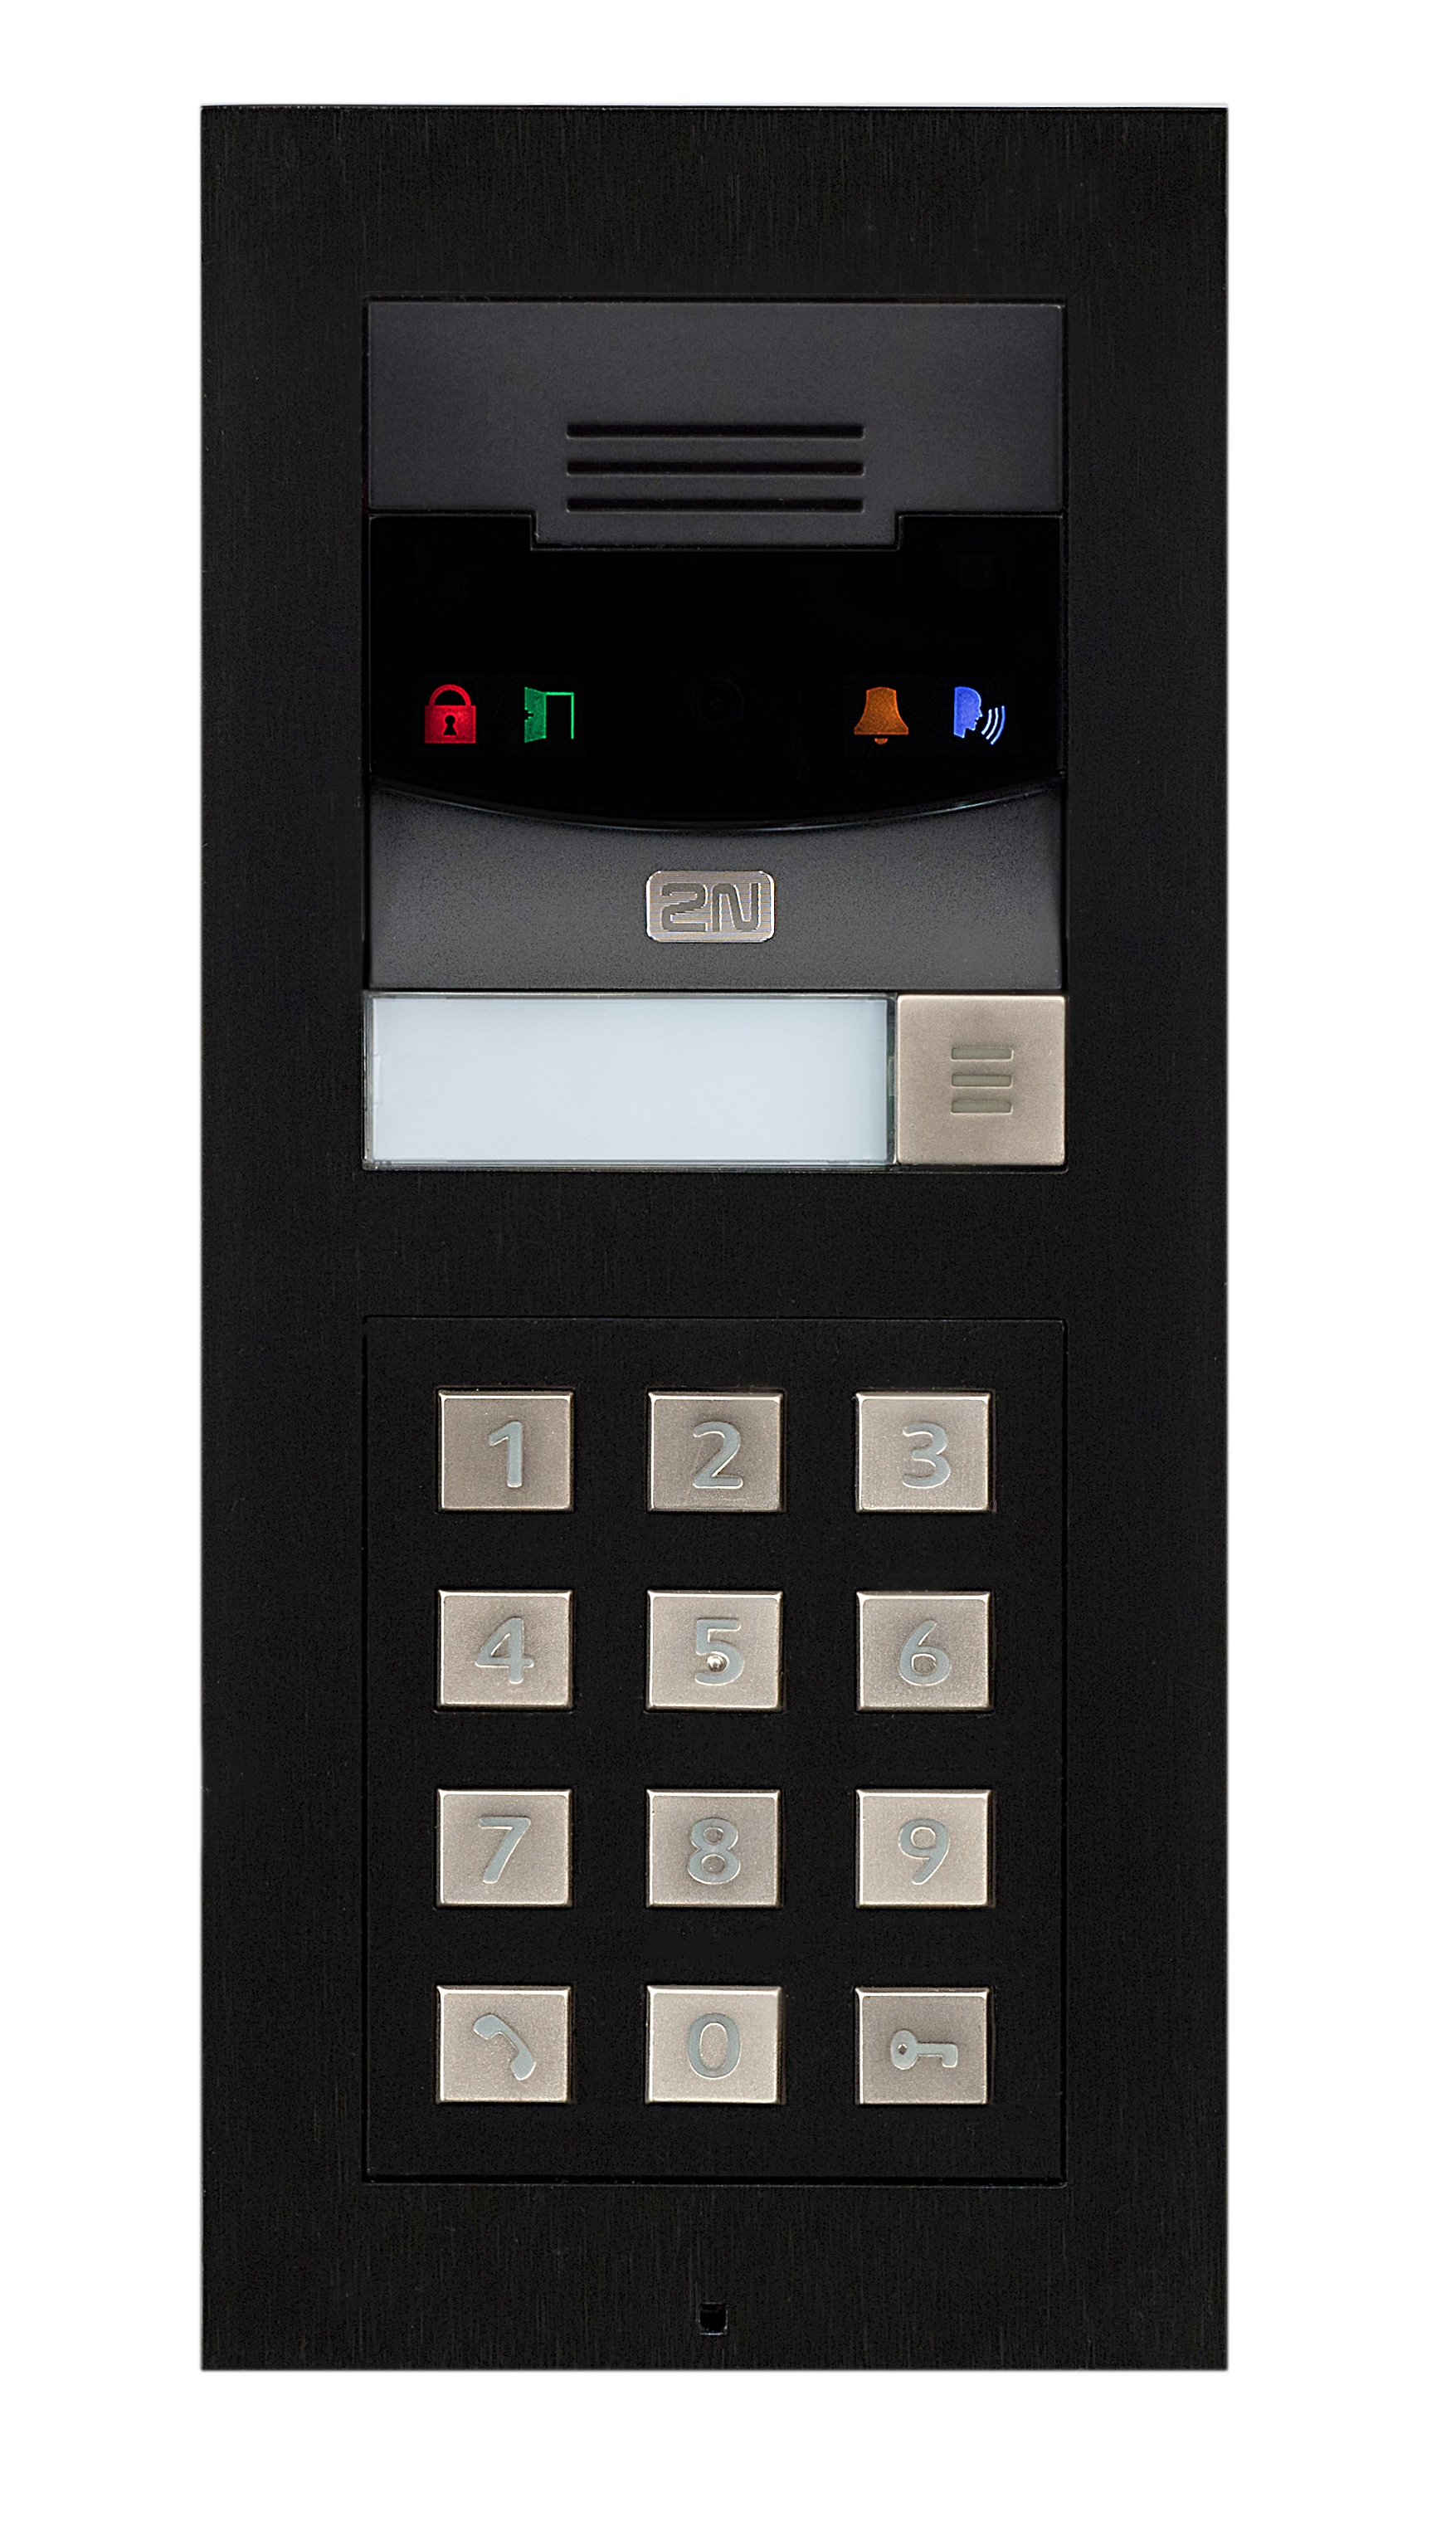 Black Keypad on Ip Pbx Phone System